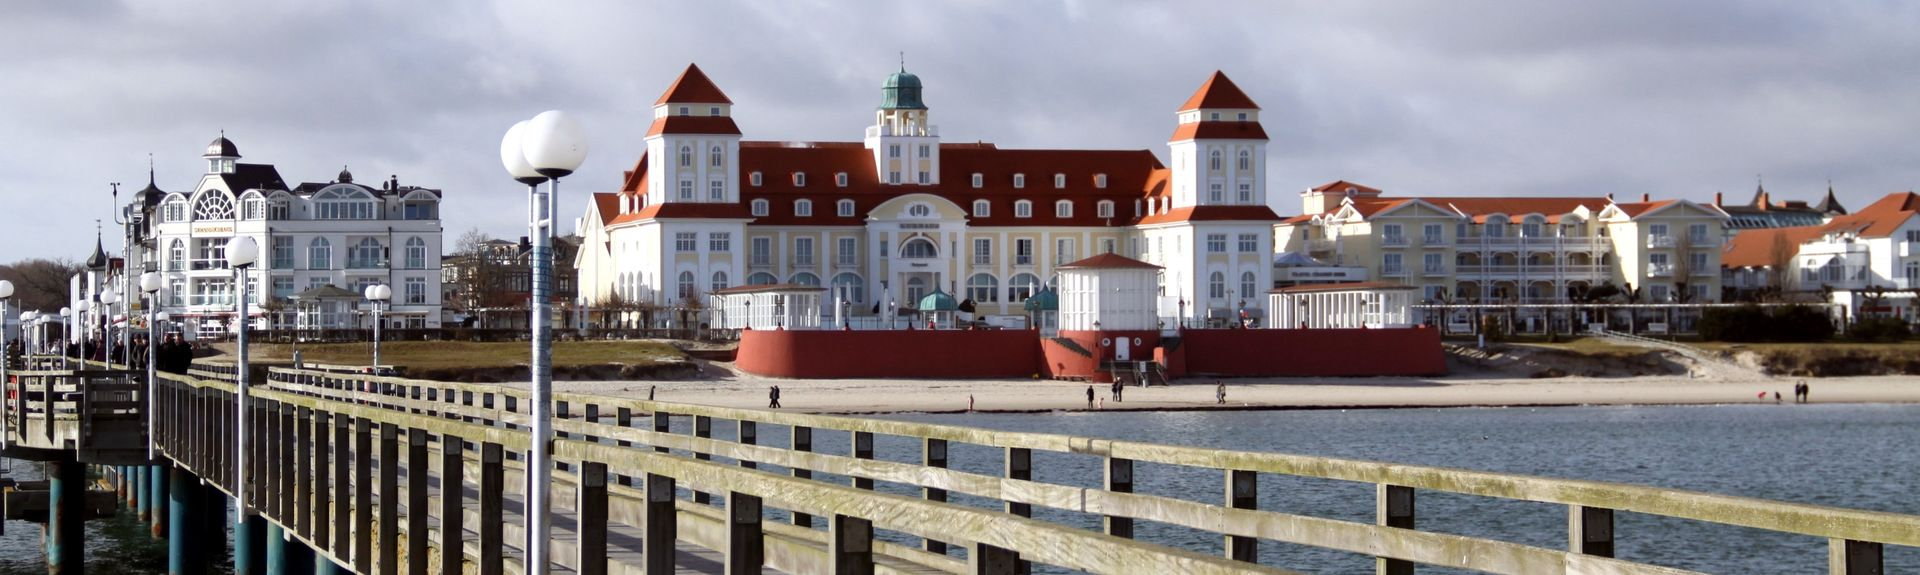 Binz, Mecklenburg-West Pomerania, Germany